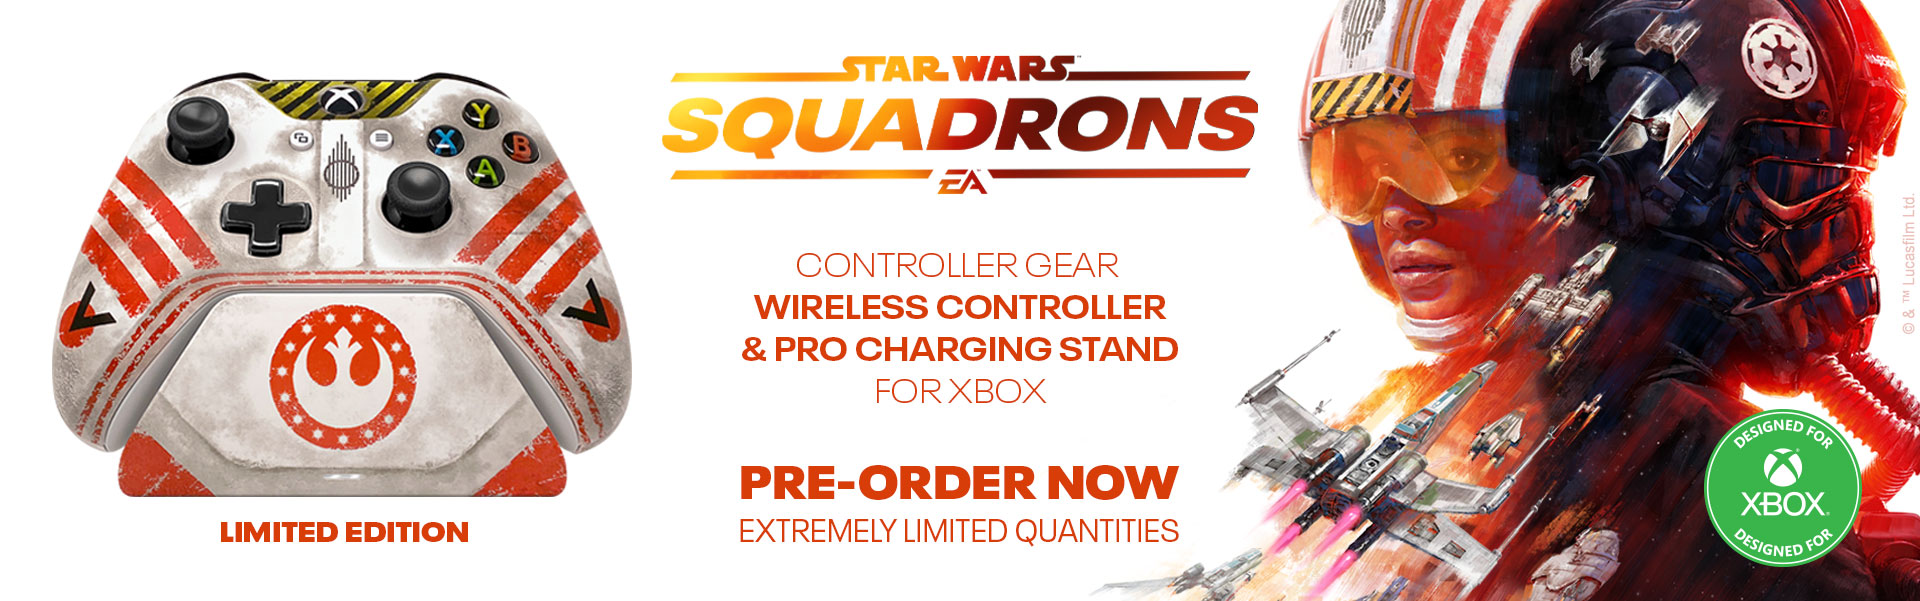 Star Wars x Controller Gear